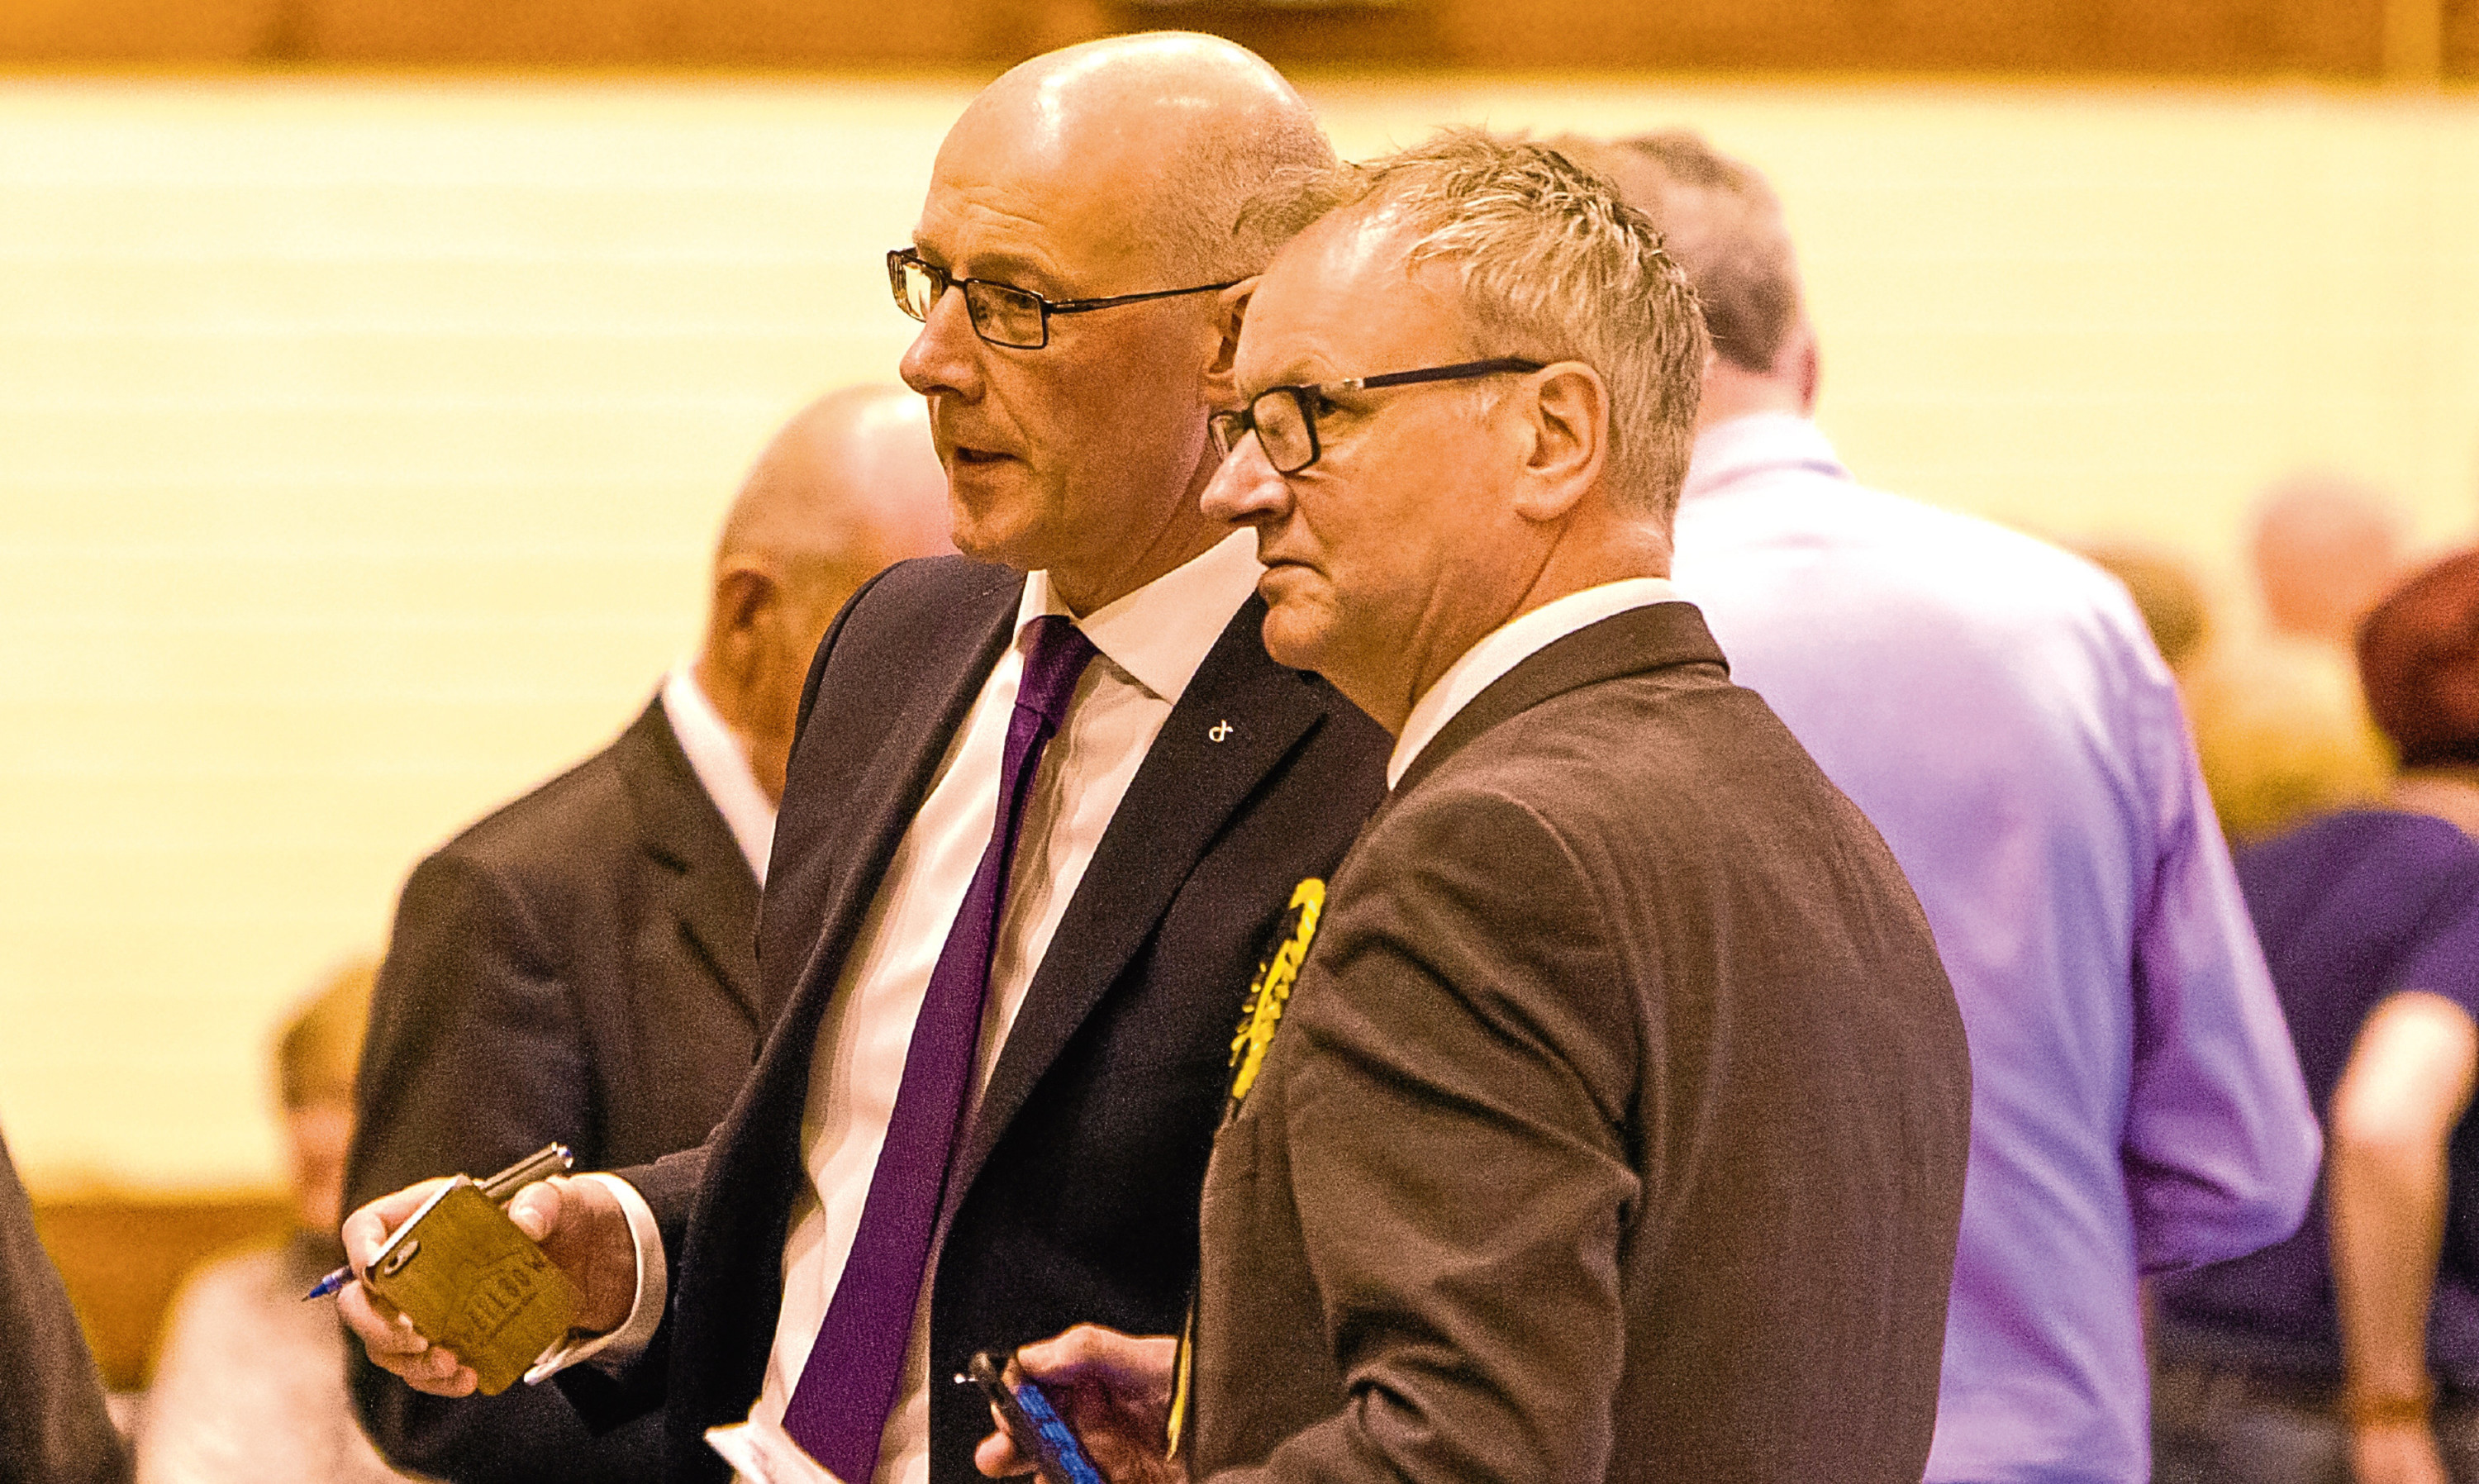 Pete Wishart, right, pictured with John Swinney at the local election count in Perth, is one SNP MP whose seat could be vulnerable in the general election.